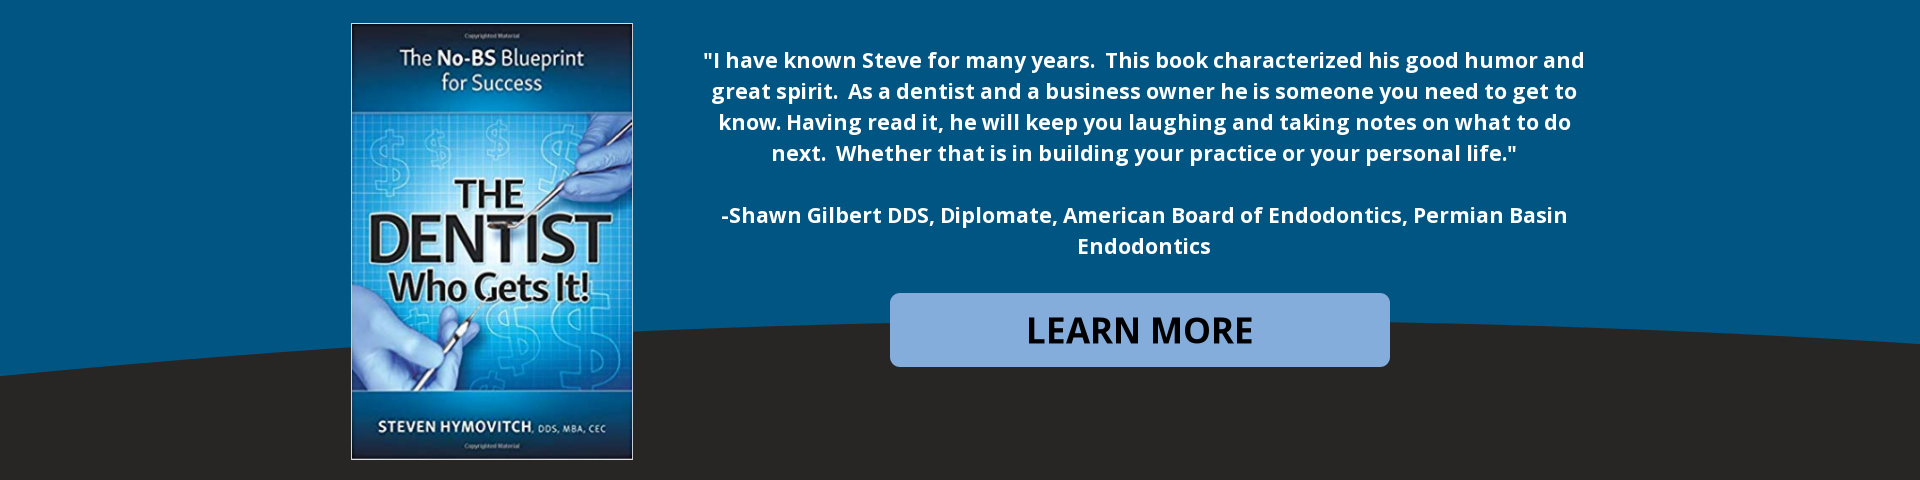 The Dentist Who Gets It! by Dr. Steven Hymovitch